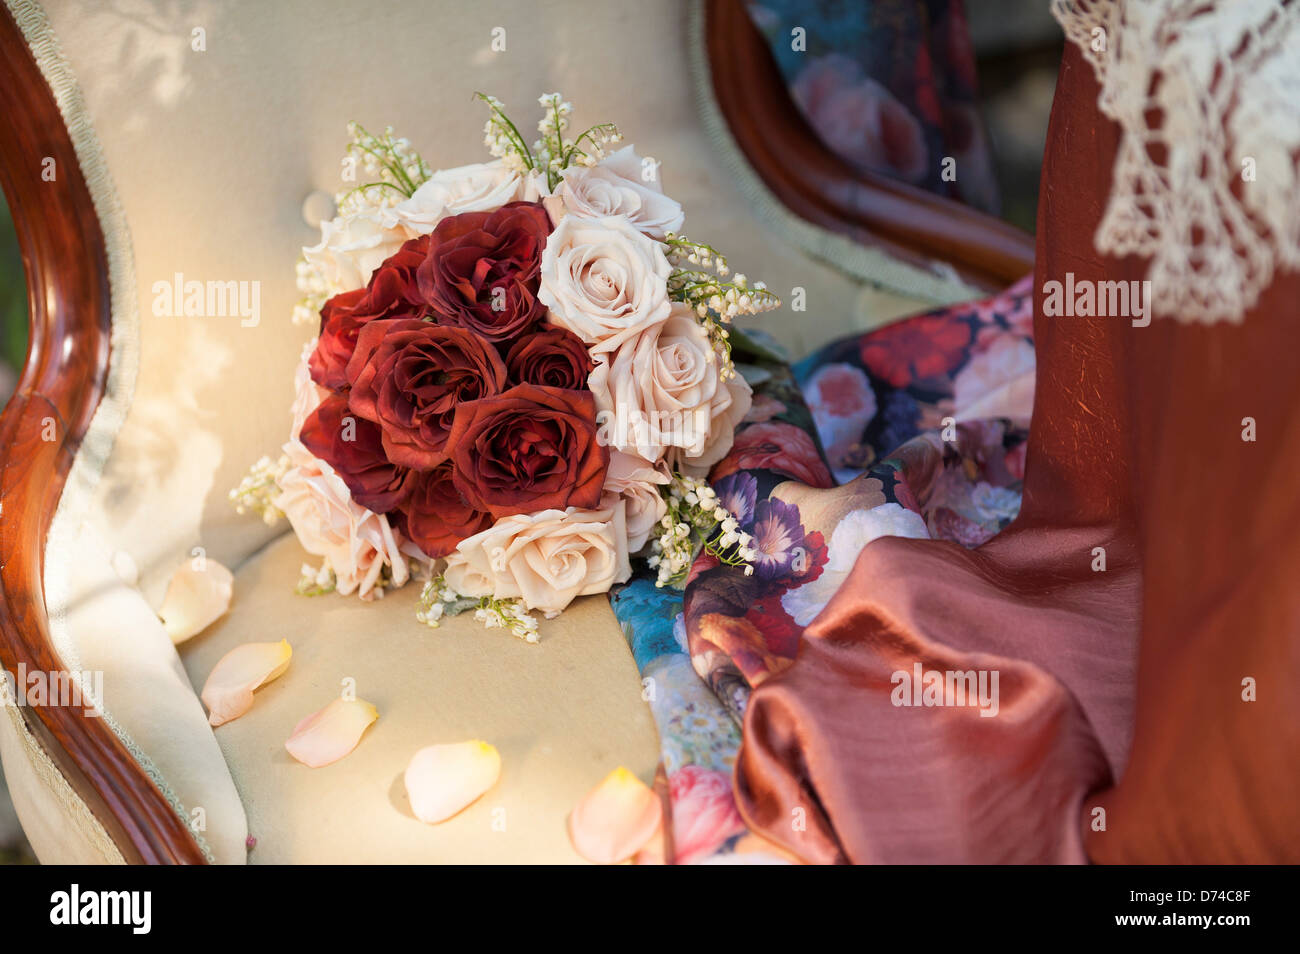 Bouquet of red and pink roses on an old fashioned high back chair - Stock Image